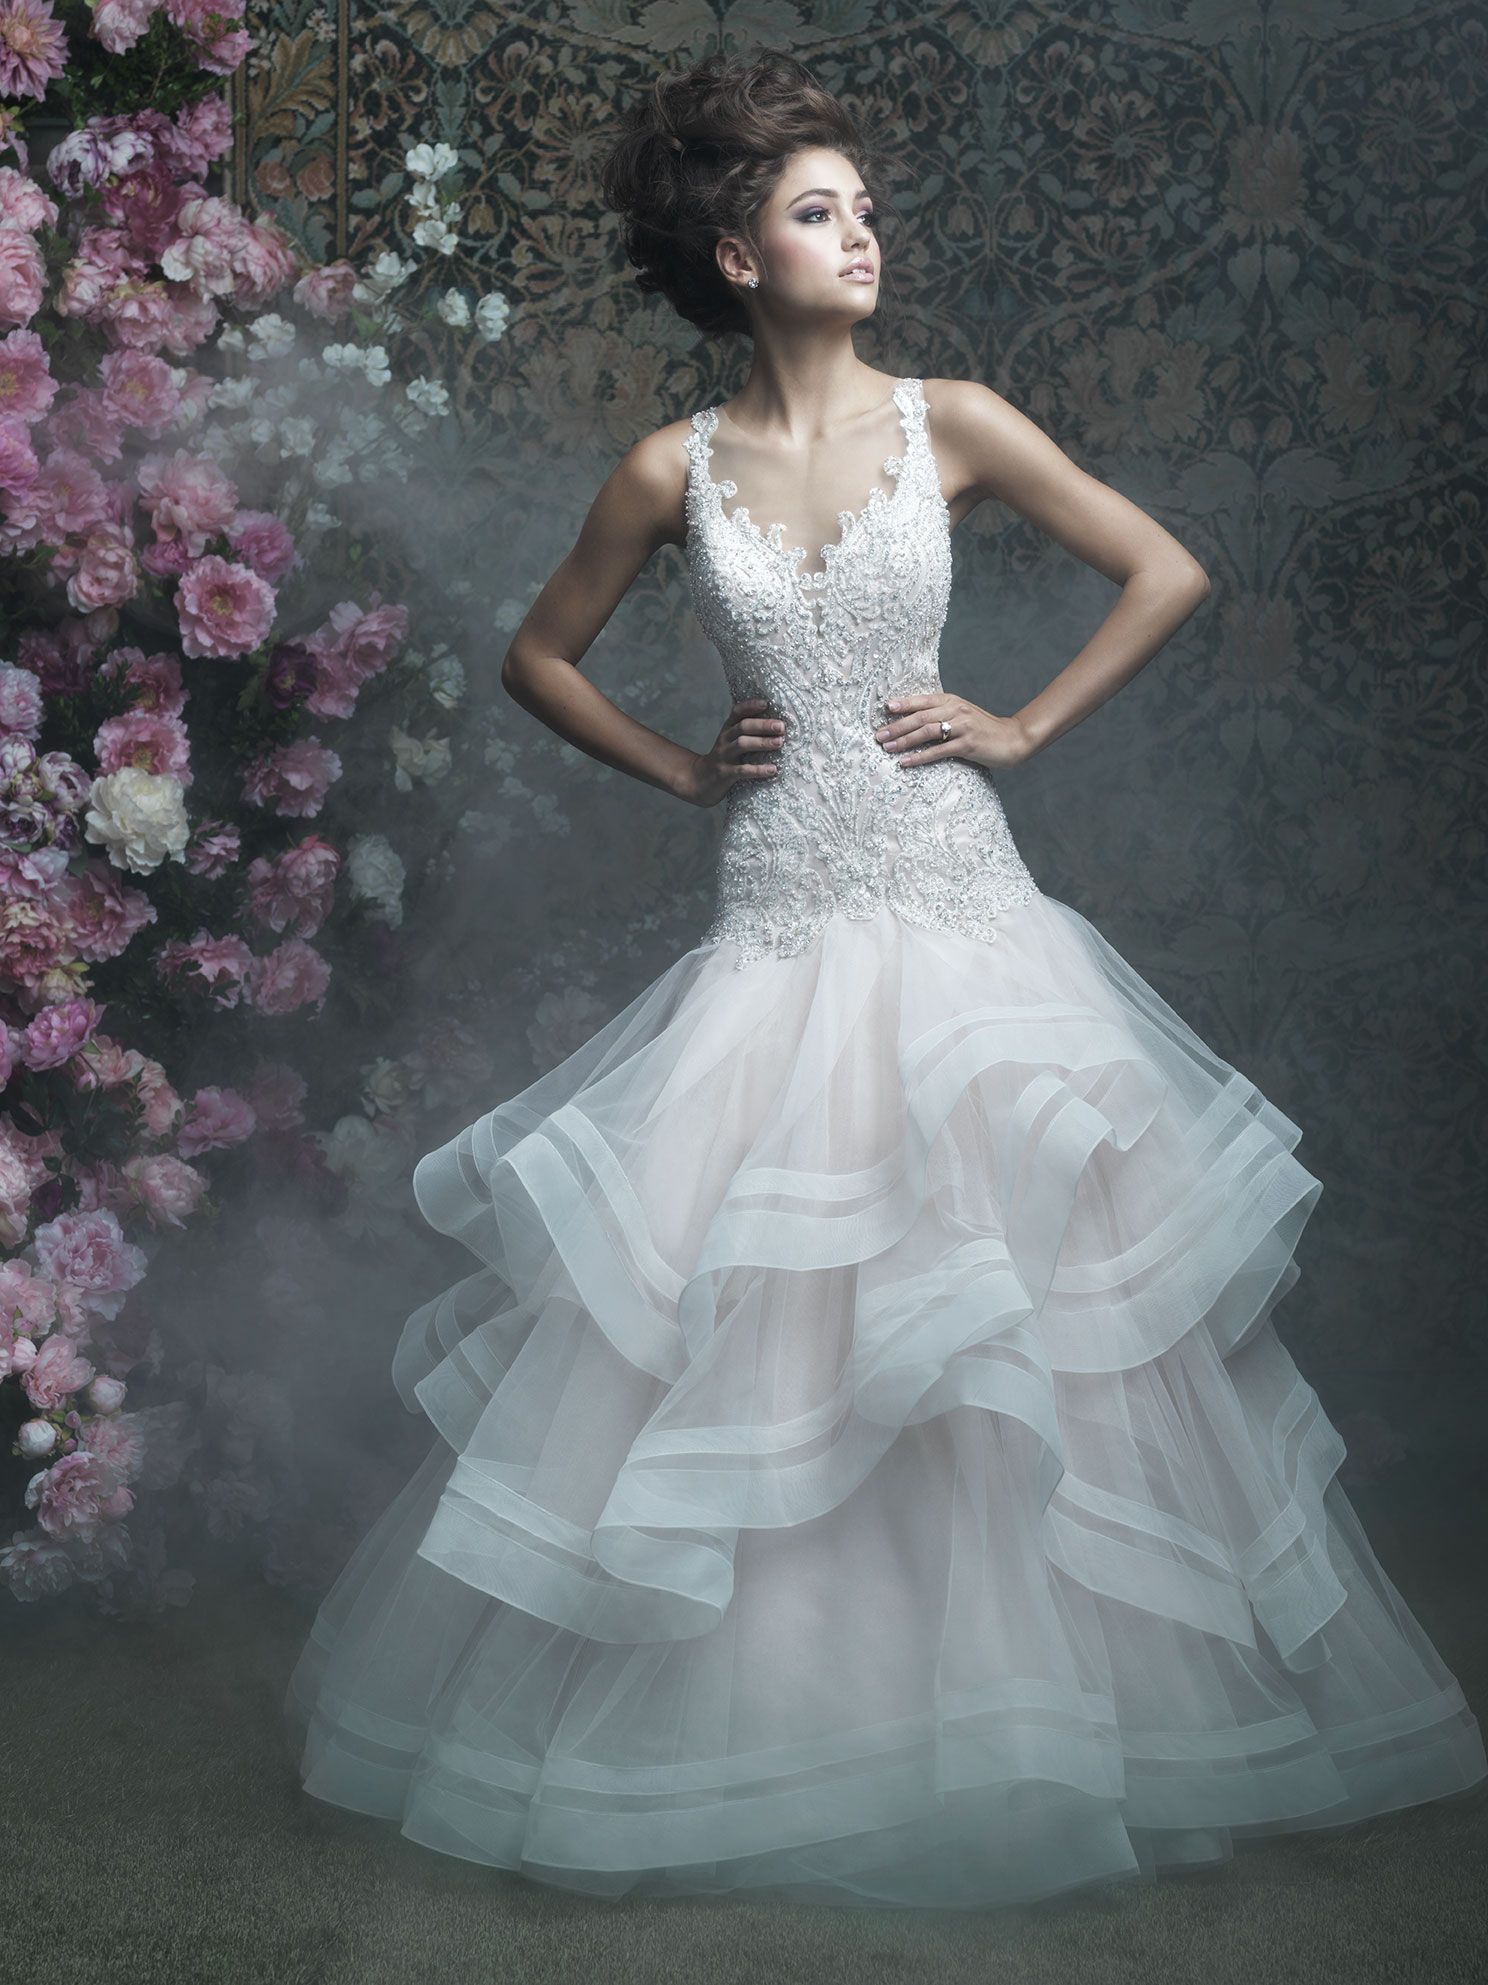 COMING SOON! Allure Couture C405 Ivory/Nude/Silver Size 14 | Dresses ...